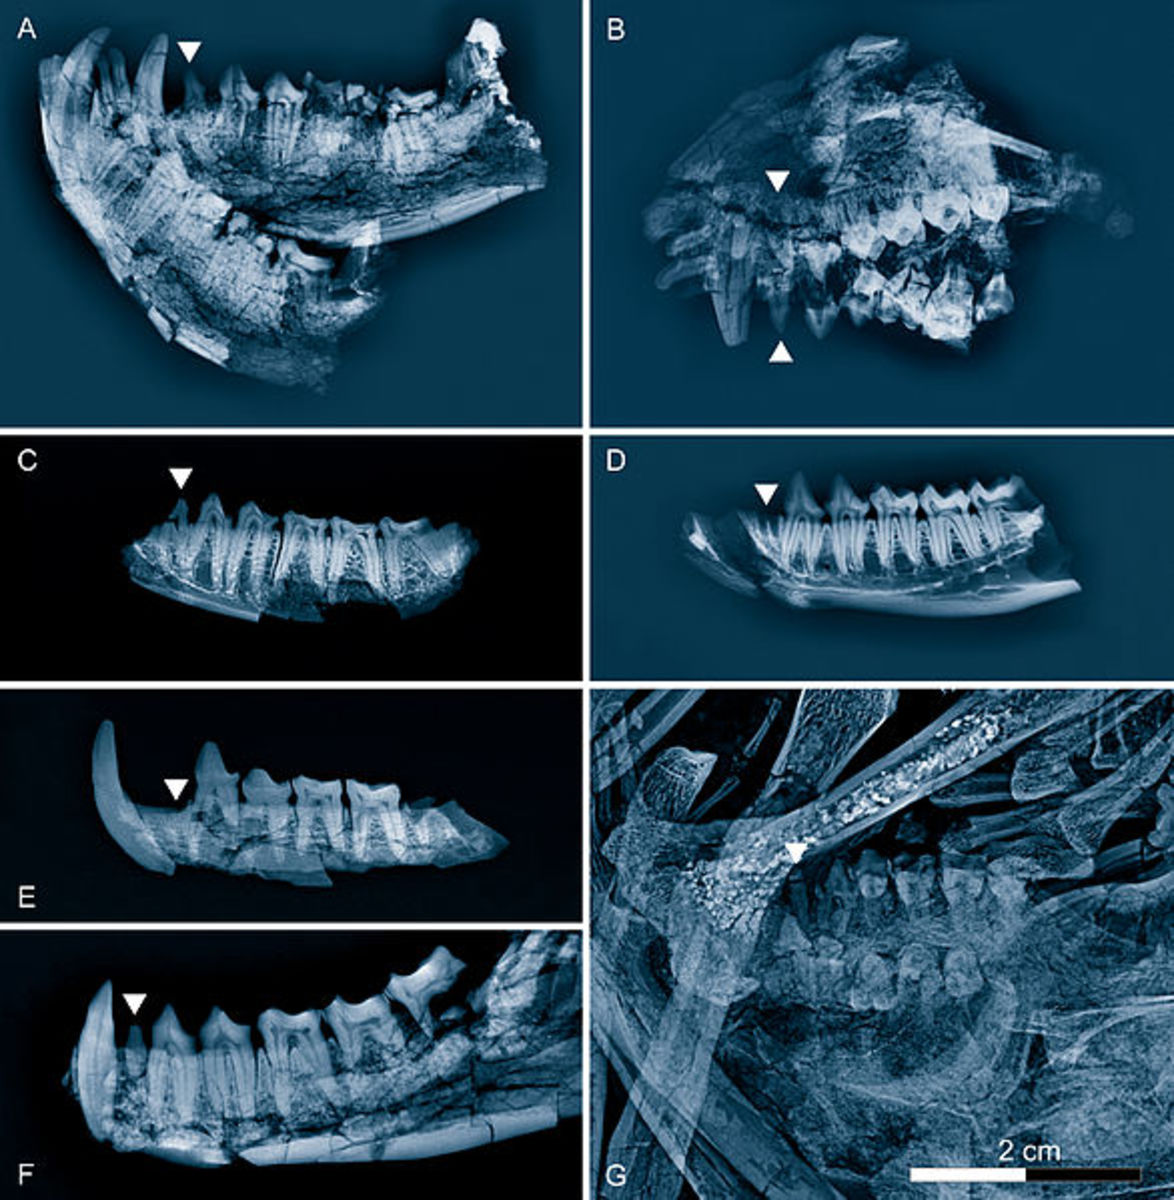 These are all radiographic reconstruction of Eocene primate jaws, including Godinotia which is in the bottom right (G).